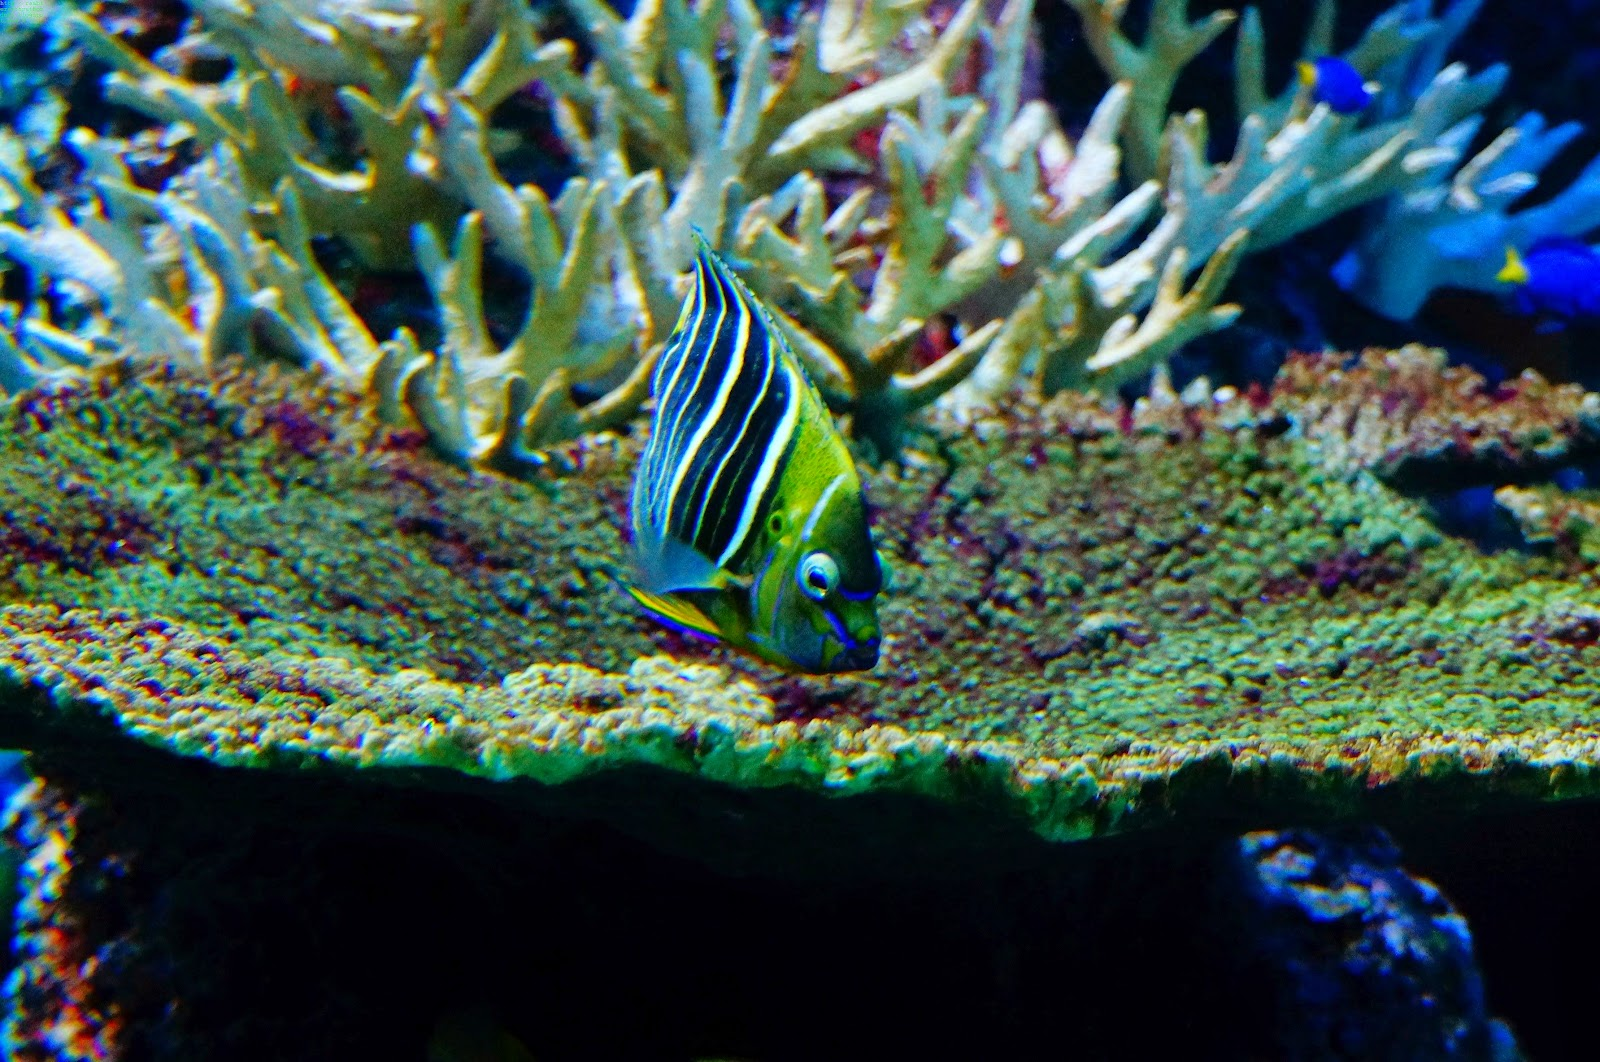 Angelfish eating corral, S.E.A. Aquarium, Sentosa, Singapore